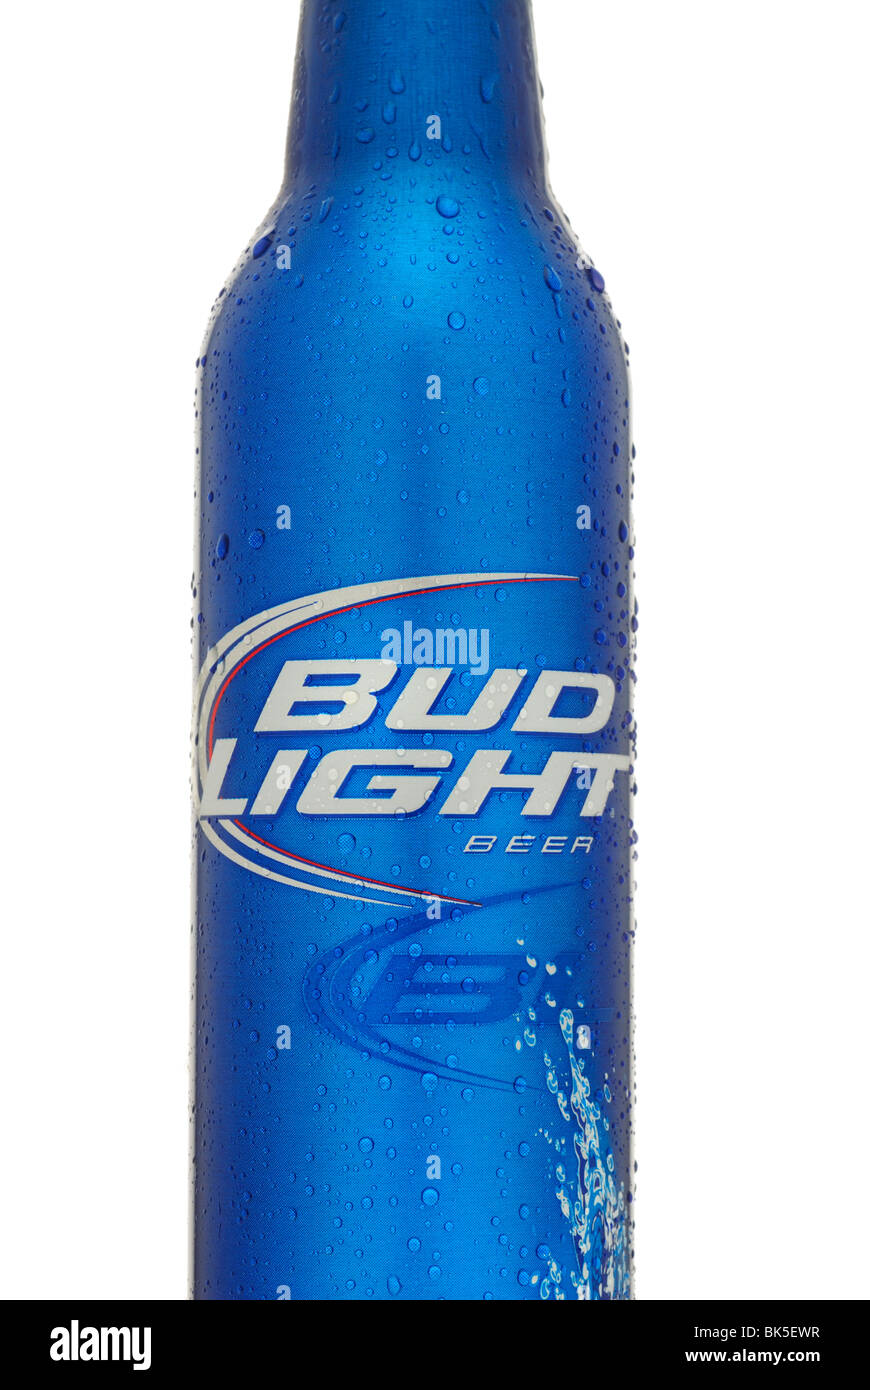 Bottle Of Budweiser Bud Light Beer   Stock Image